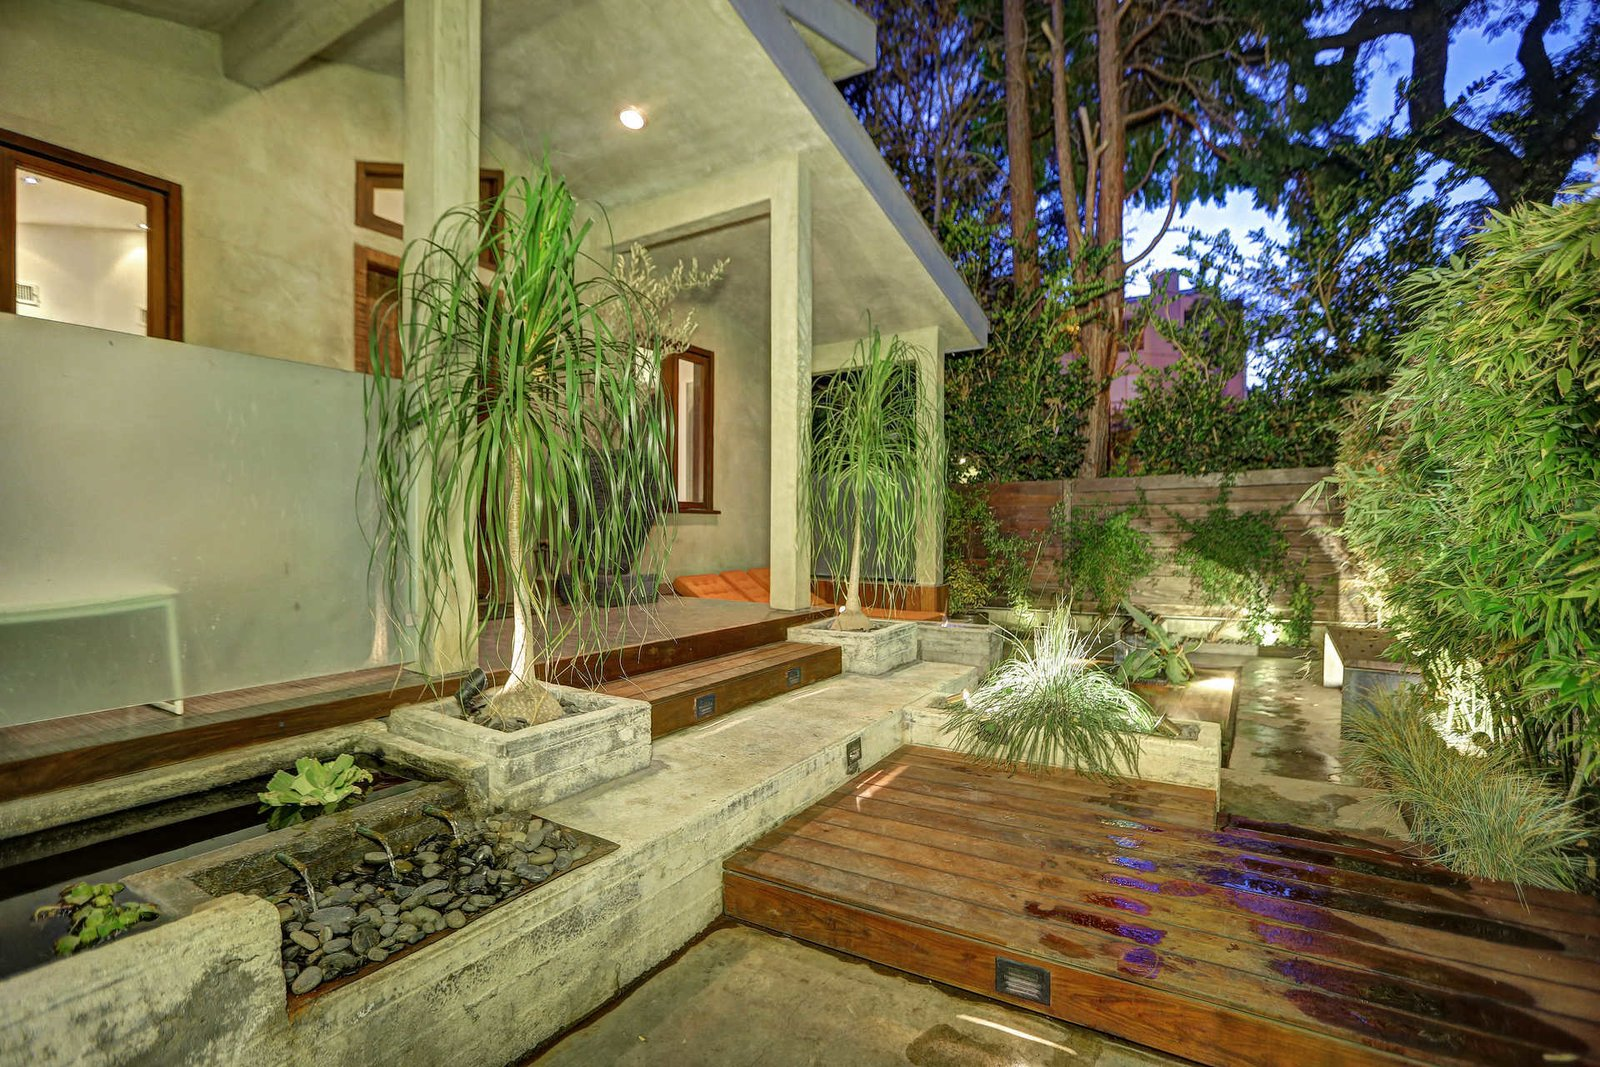 A serene Koi water garden provides a moment of quietude before entering the main residence.  Sleek West Hollywood Contemporary